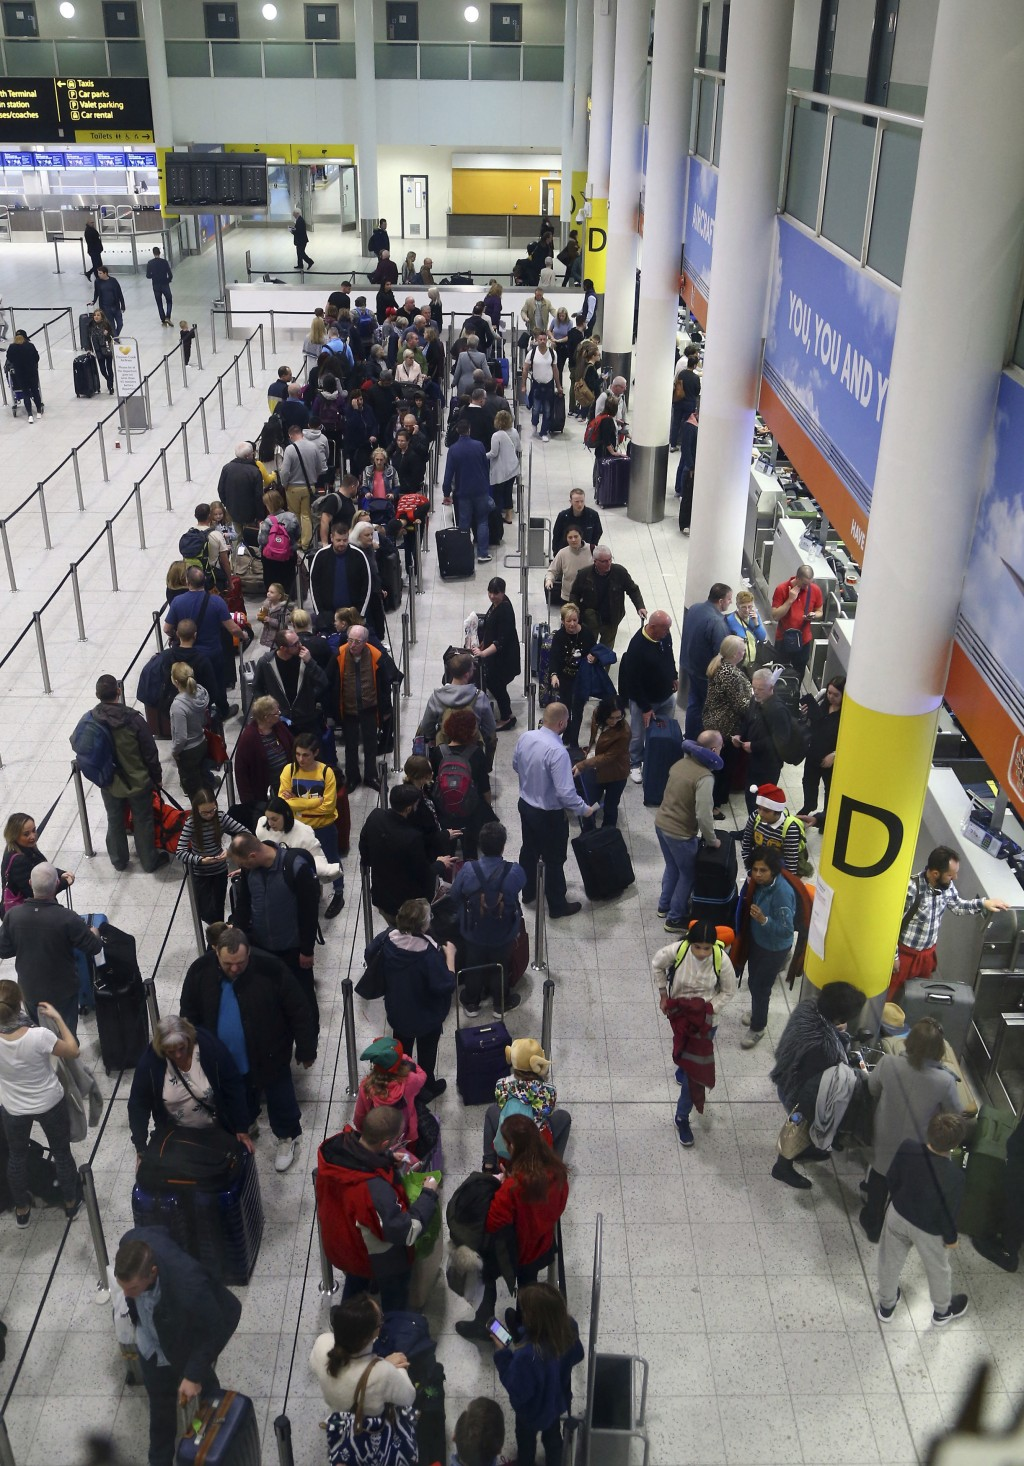 Passengers queue for flights at Gatwick Airport as the airport and airlines work to clear the backlog of flights delayed by a drone incident earlier i